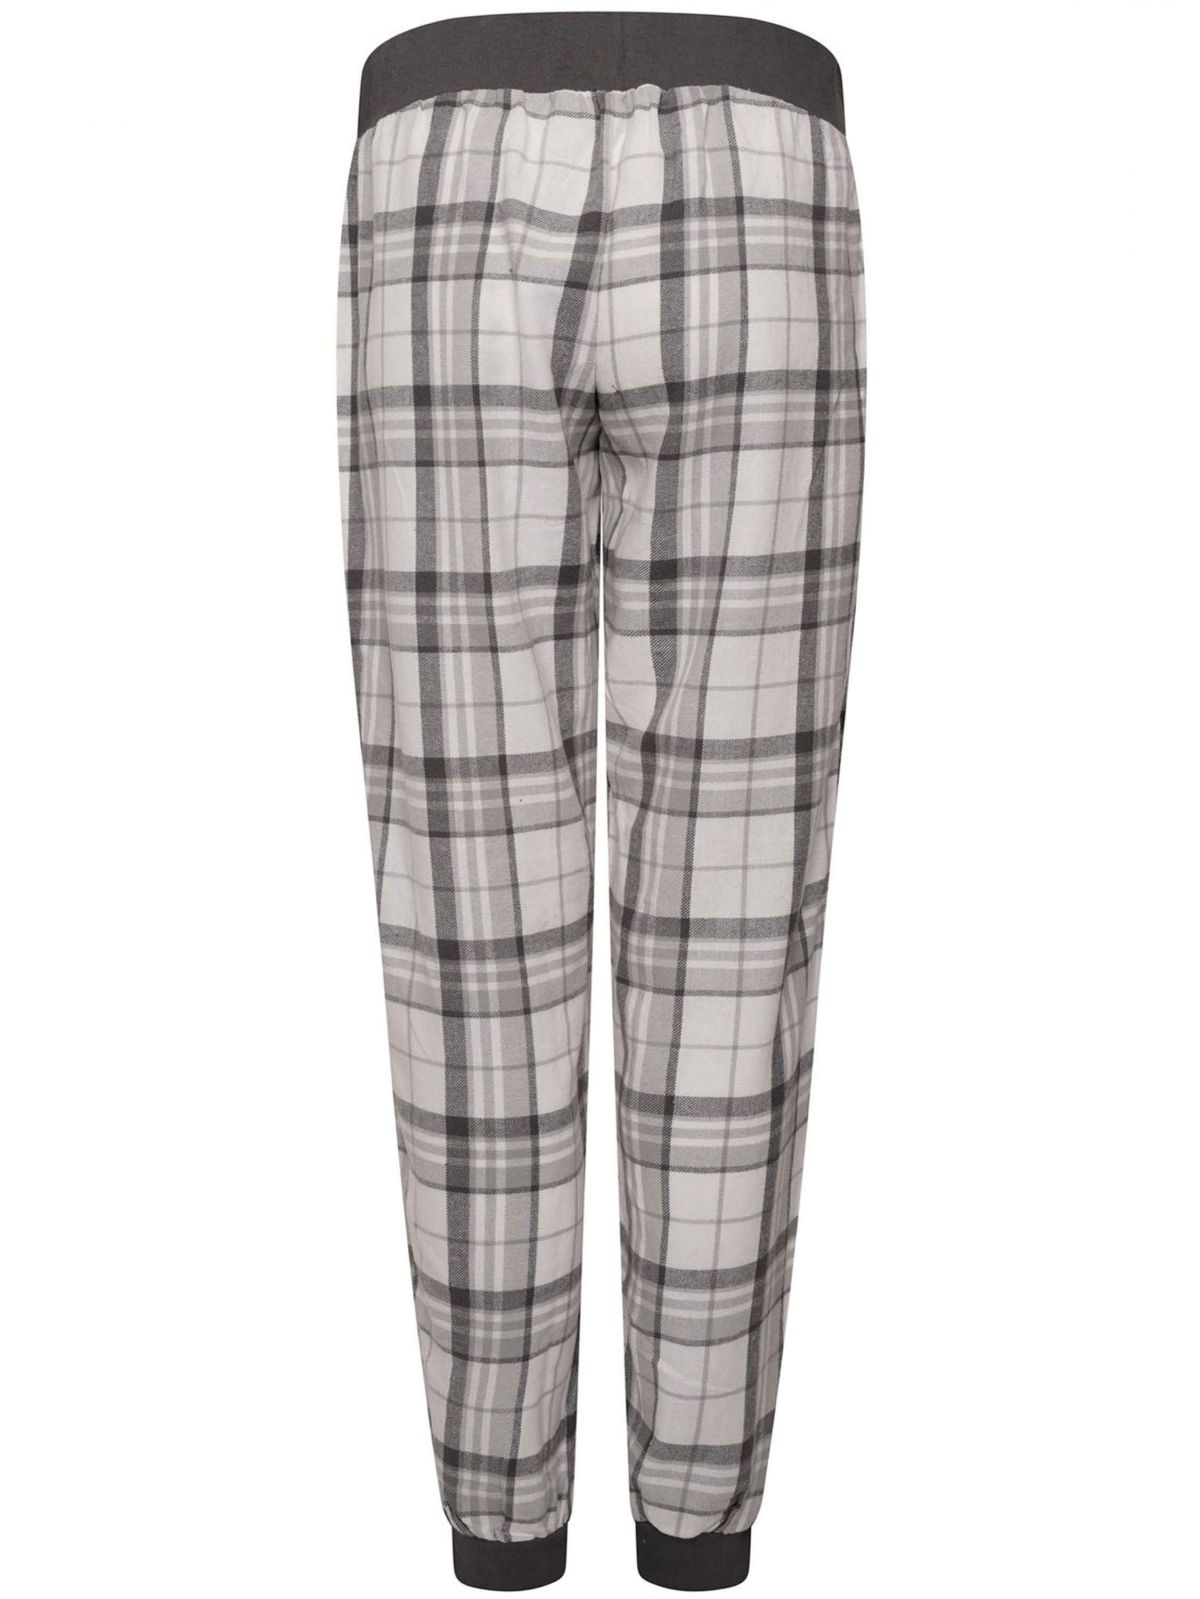 Womens Cuffed Lounge Pants | Extra Comfy